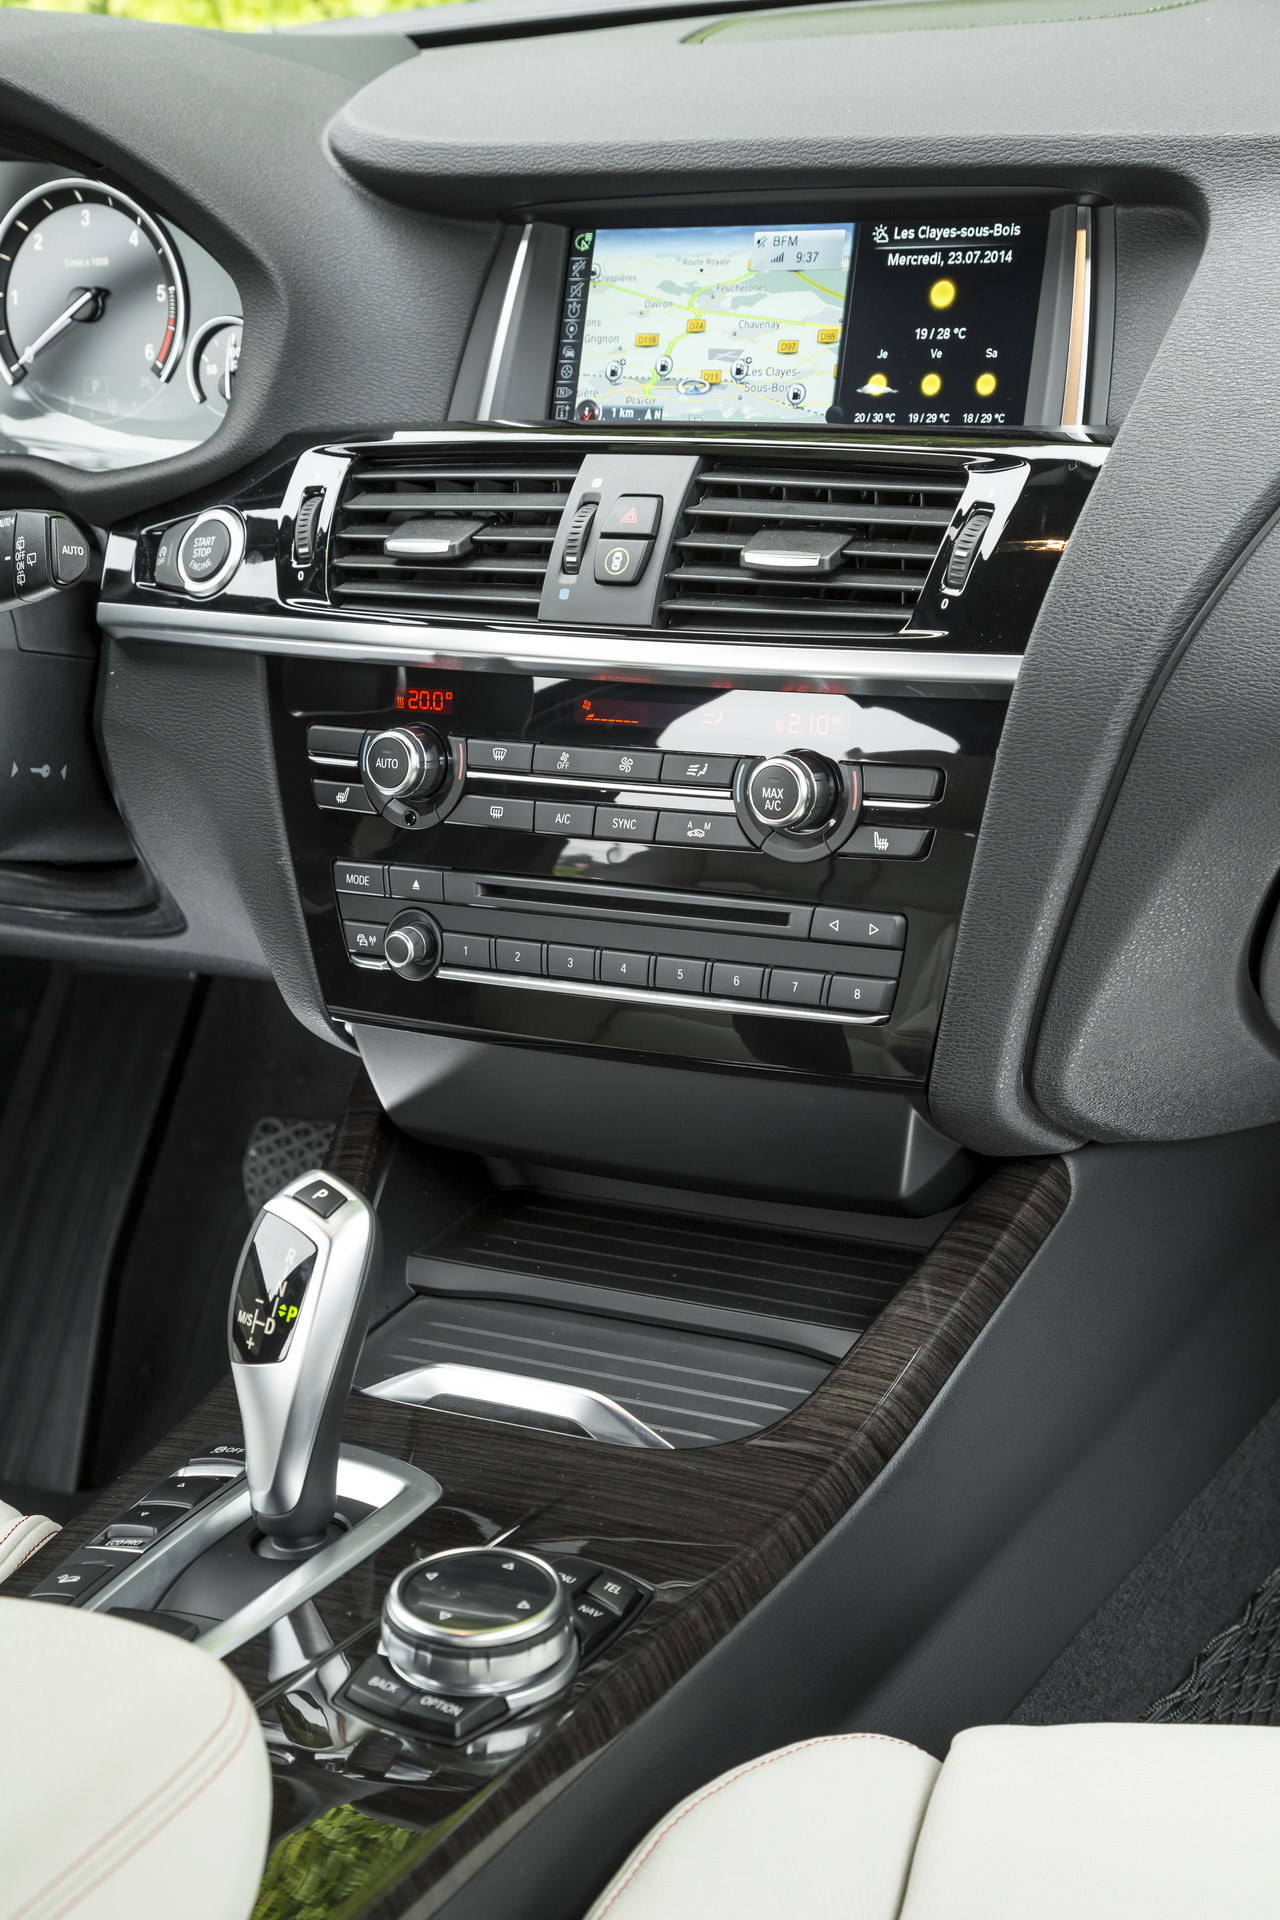 essai bmw x3 20d bva x line de 190 ch retour dans la course 2014 photo 20 l 39 argus. Black Bedroom Furniture Sets. Home Design Ideas